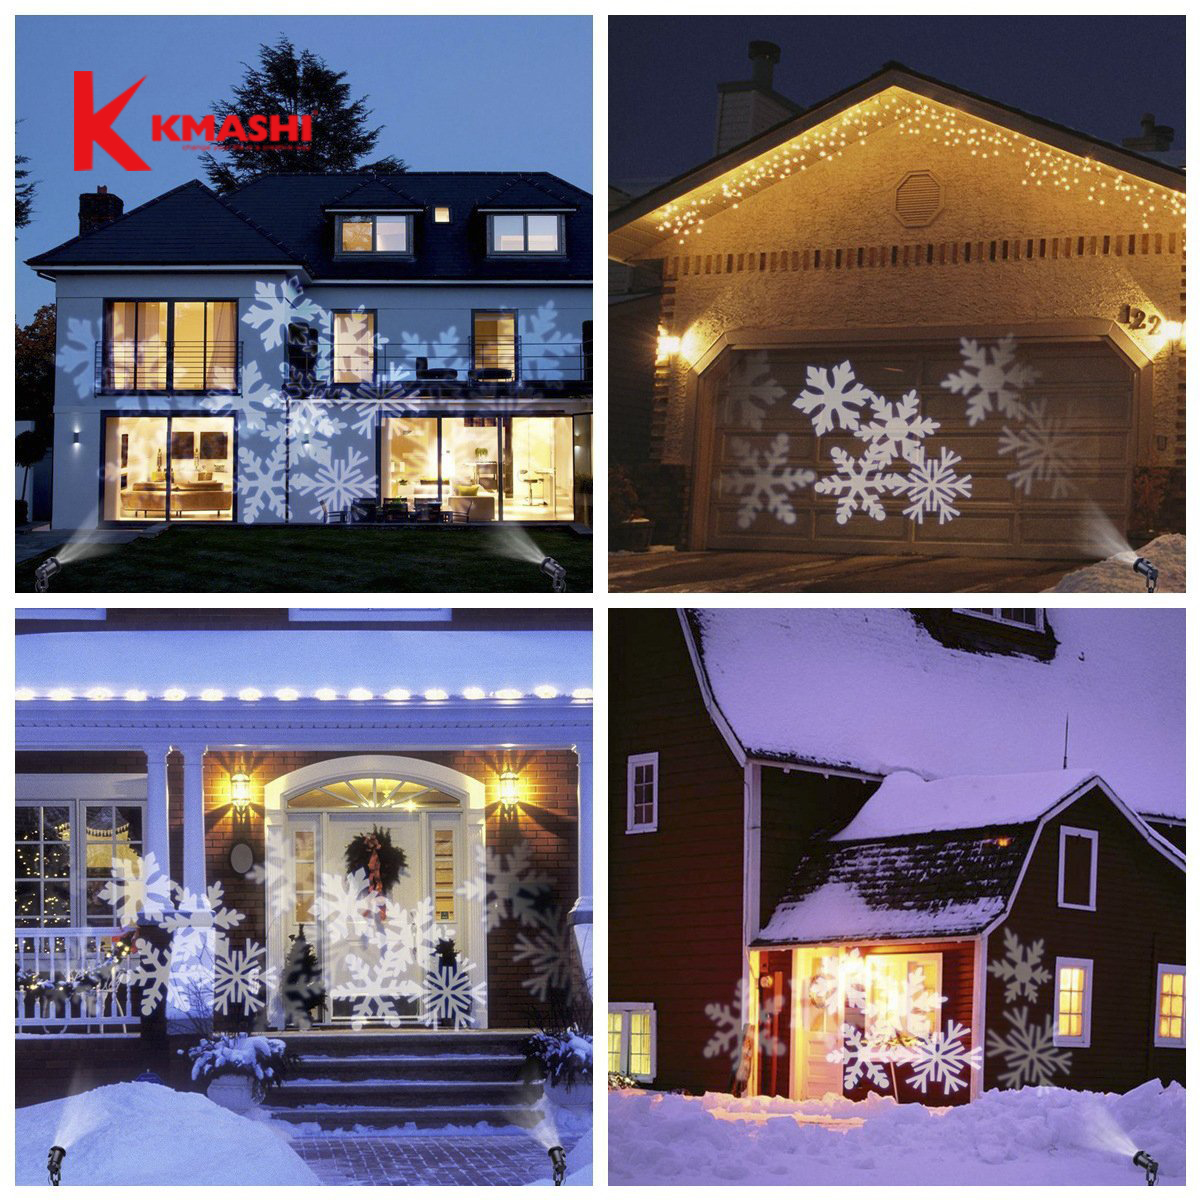 kmashi christmas light projector light spotlight 4pics dynamic light white snow showparty holiday decoration outdoor lighting in led lawn lamps from lights